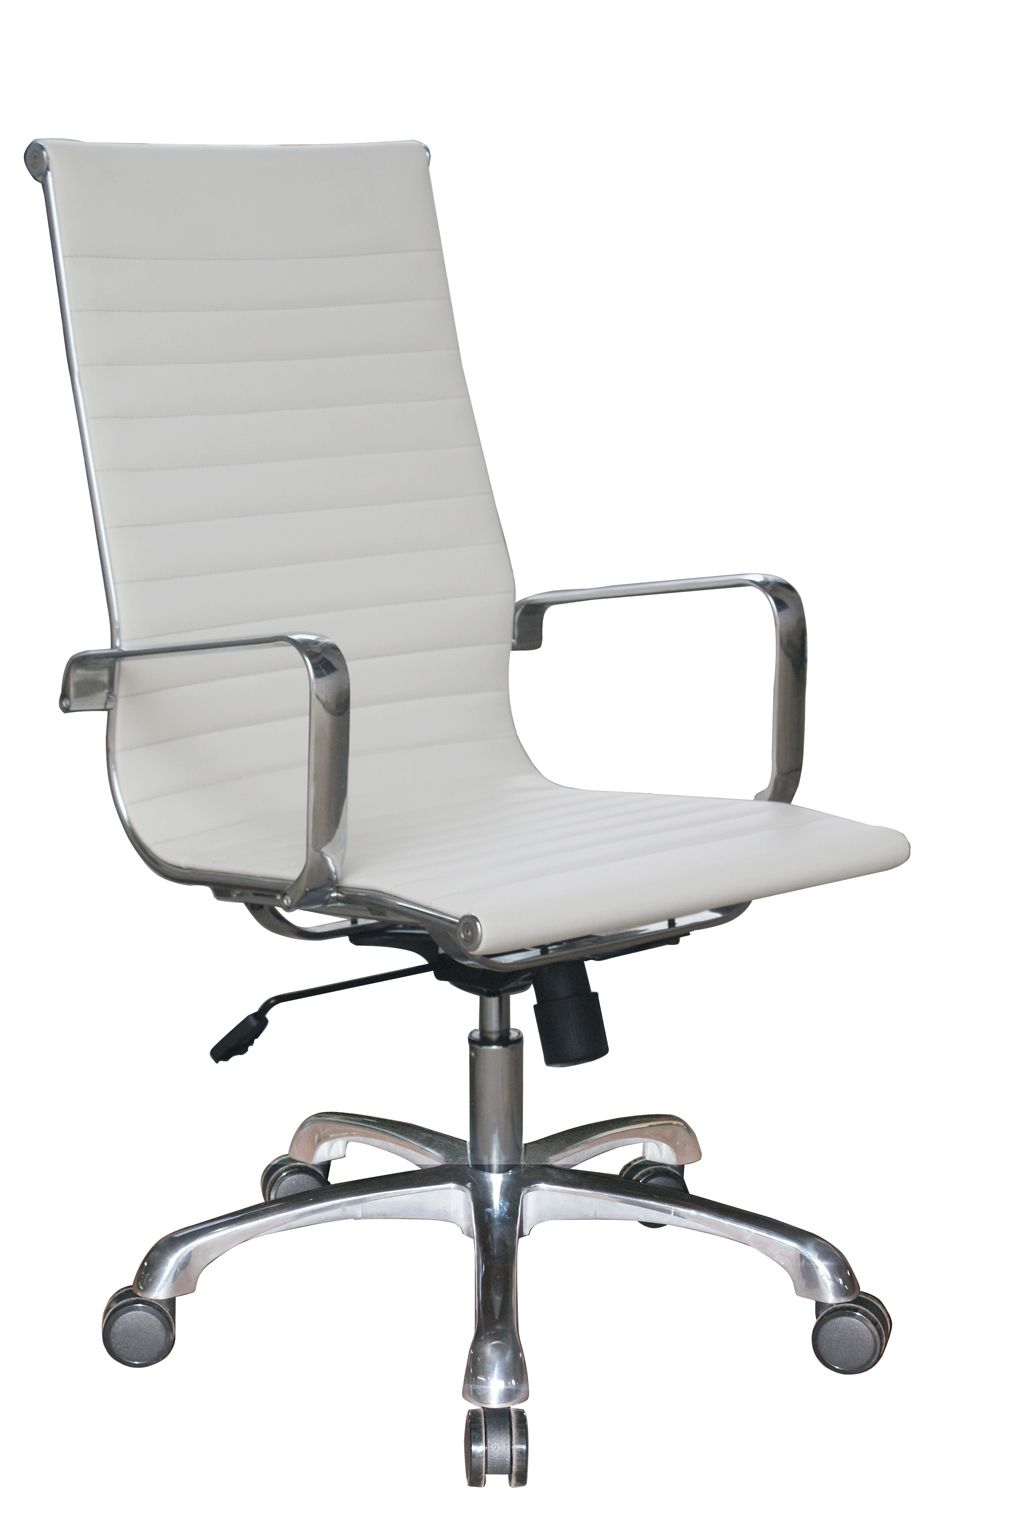 conference room task chairs